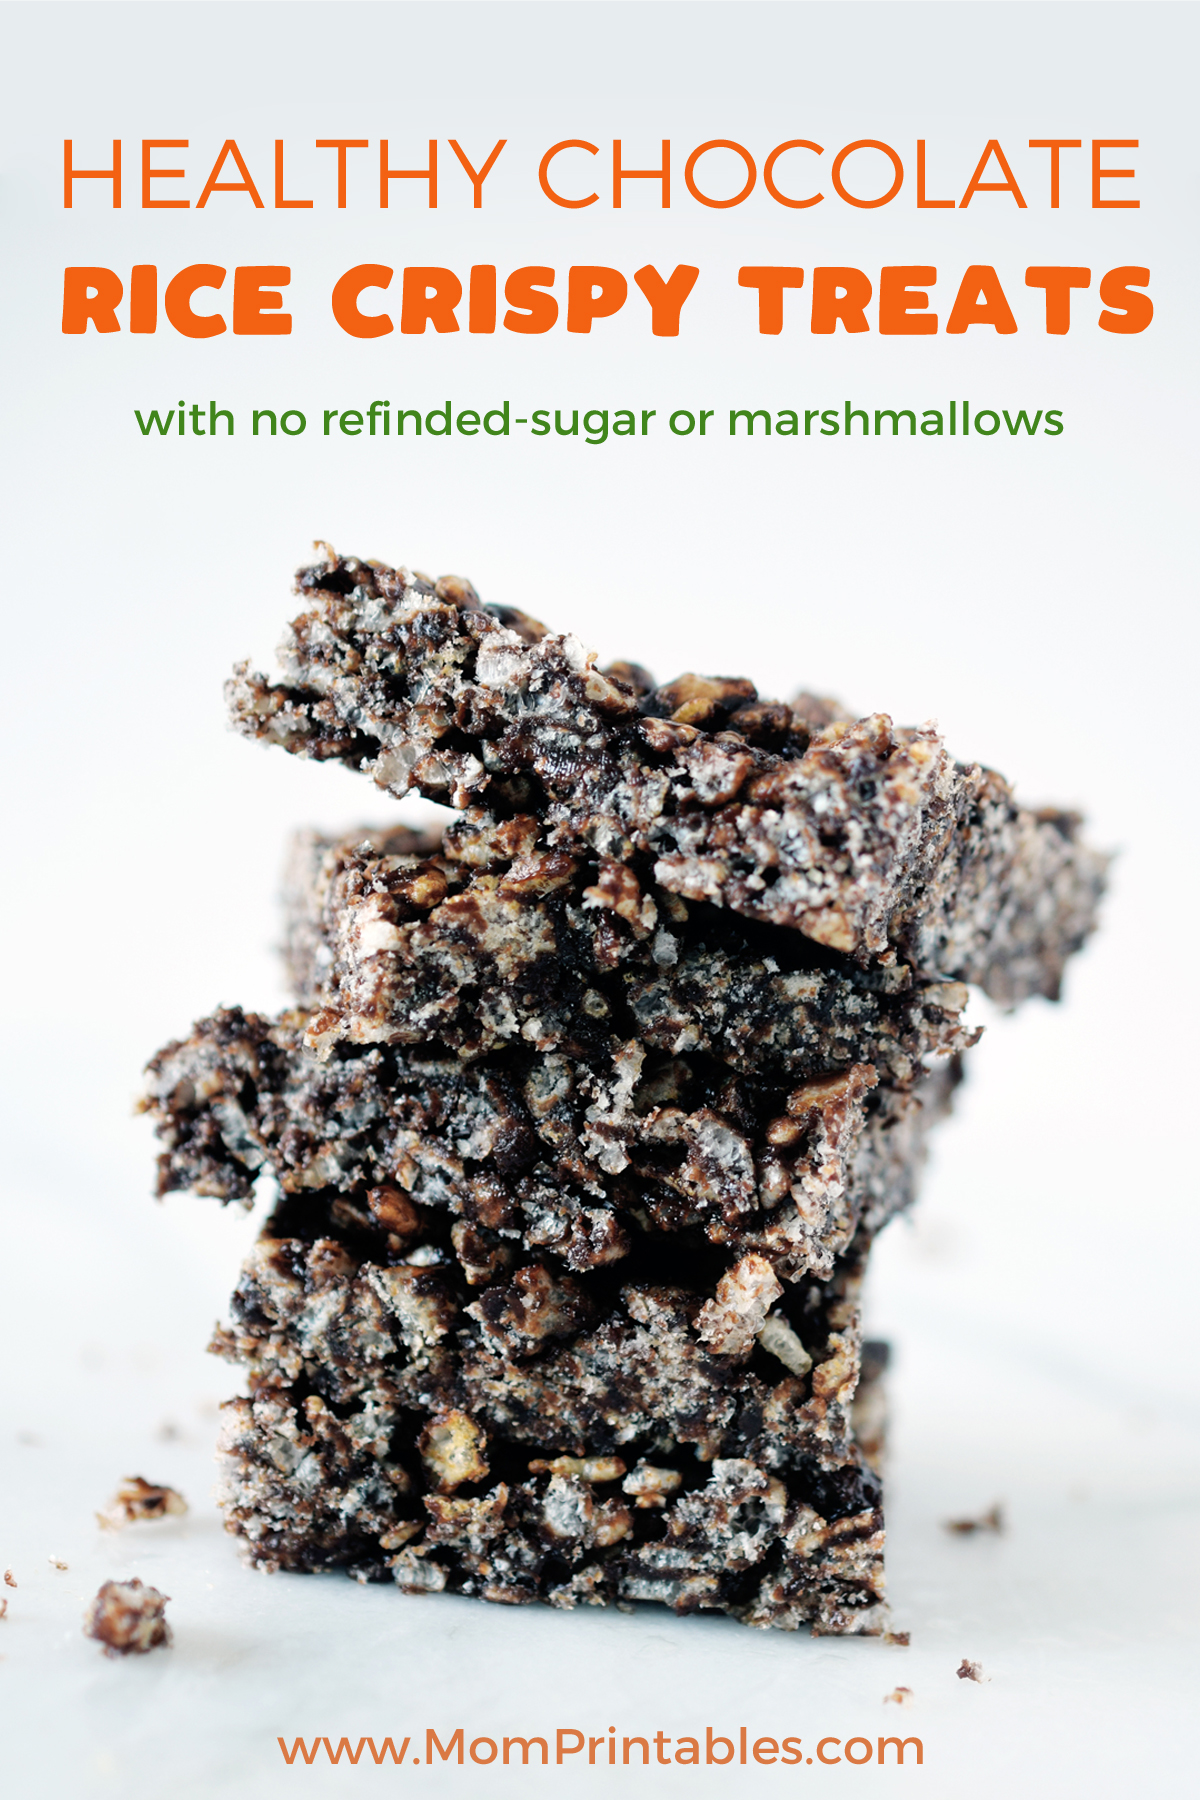 Healthy Chocolate Rice Crispy Treats that have no refined sugar and no marshmallows. They are naturally sweetened with maple syrup. The protein from Sunbutter (or nut butter) makes them a great snack for families. These are dairy free, nut free, low carb, and a great kids snack idea. #chocolate #healthy #dessert #rice #crispy #treats